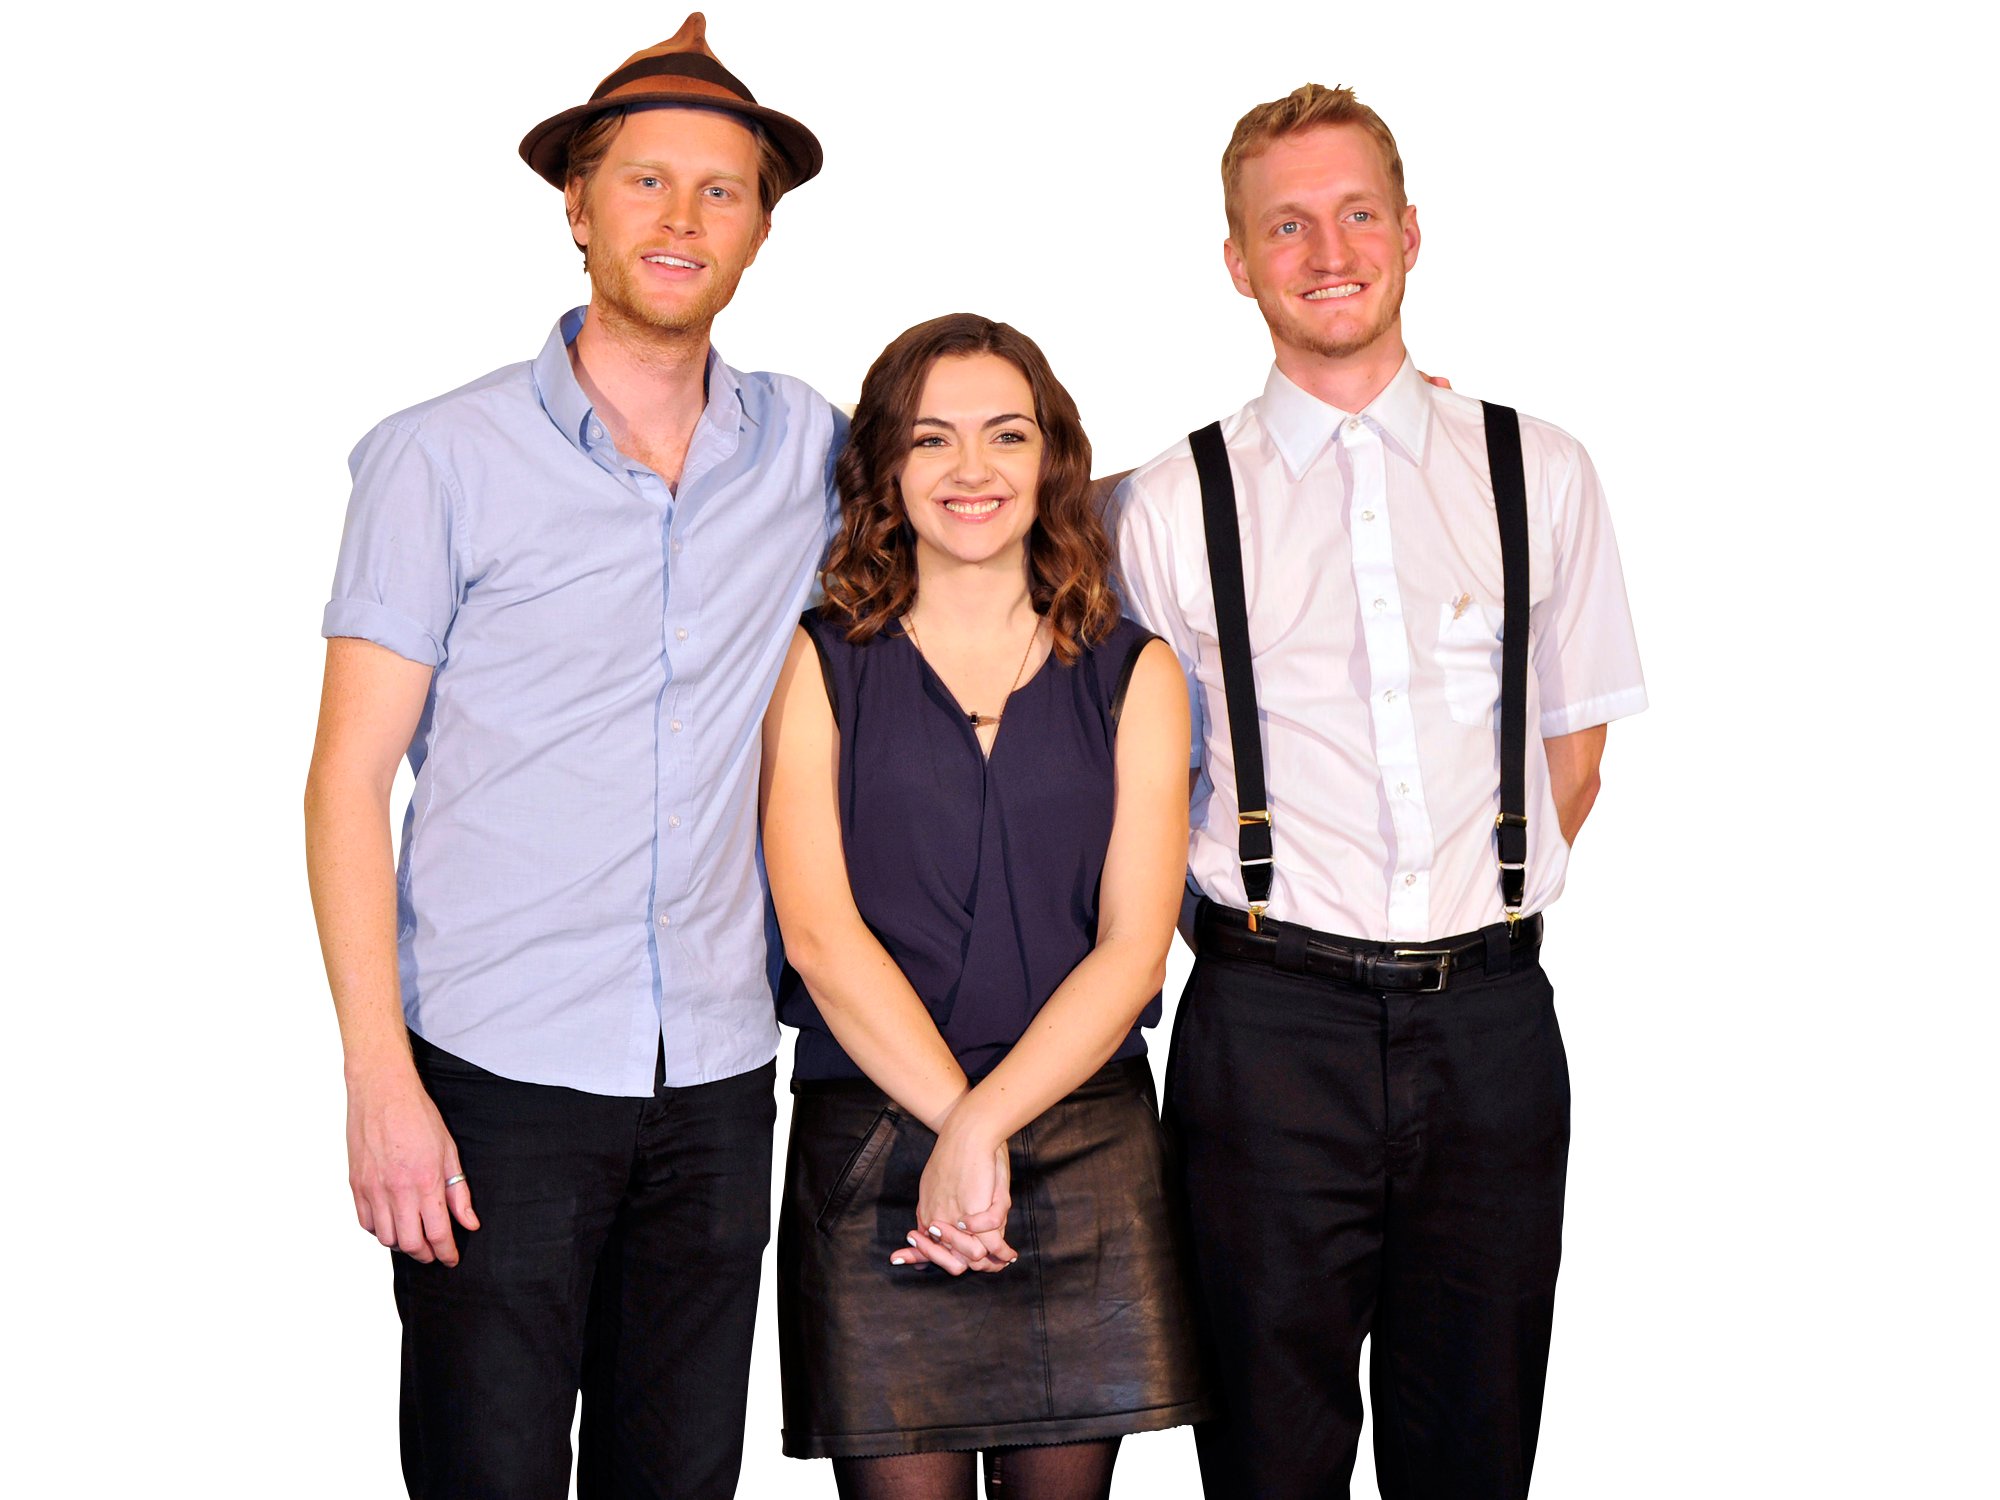 The Lumineers To Perform At Keybank Center Next Year News 4 Buffalo